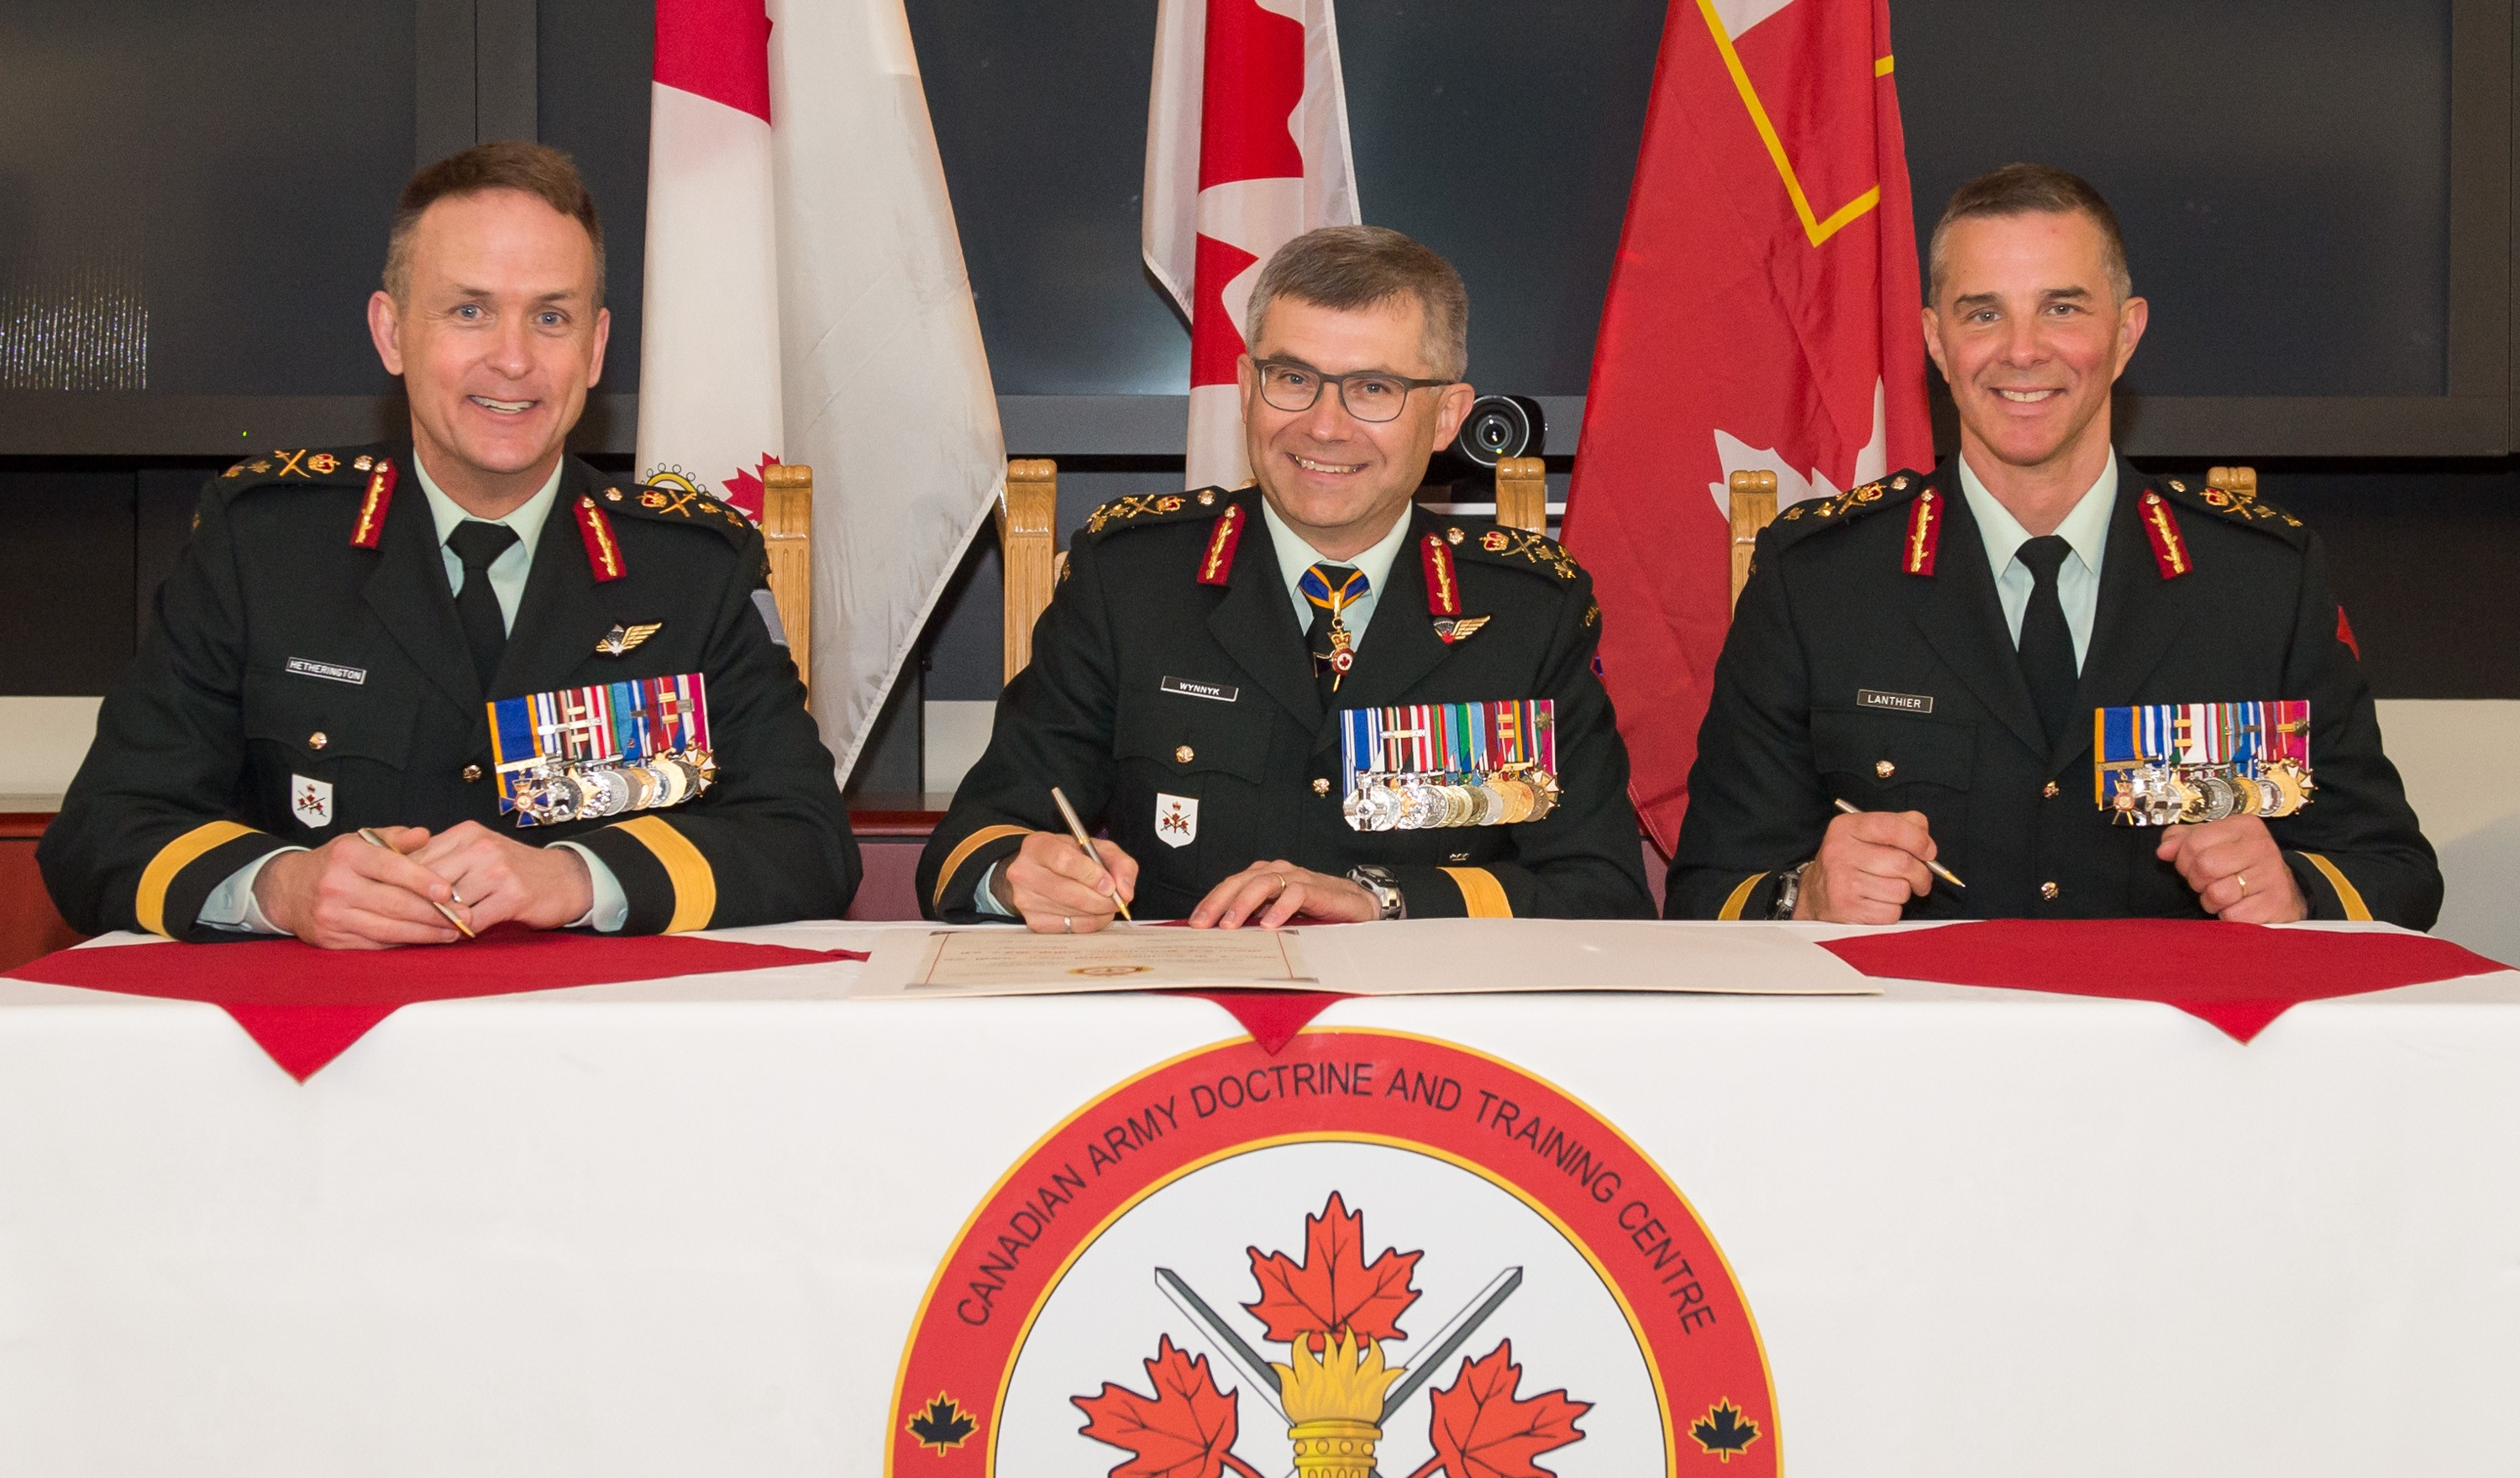 Major-General Simon Hetherington (left) assumes command of the Canadian Army Doctrine and Training Centre from Major-General Jean-Marc Lanthier (right) at Fort Frontenac, Kingston, on 26 April 2017. The ceremony is presided by Lieutenant-General Paul Wynnyk (centre), Commander Canadian Army.